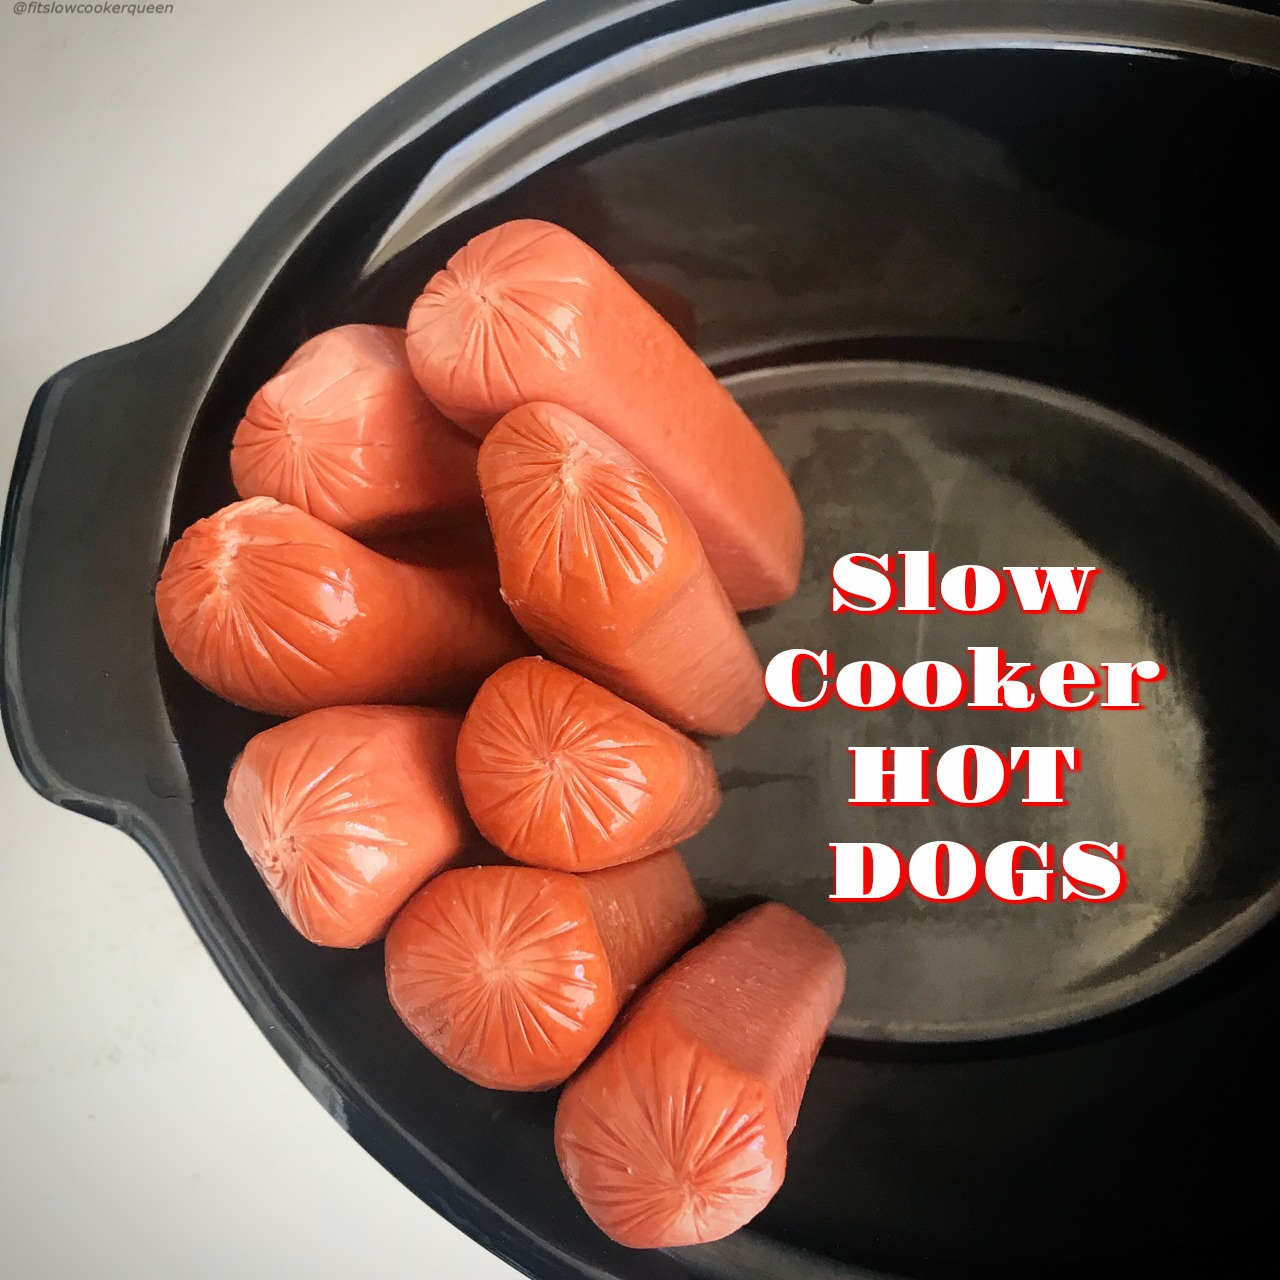 If you love steamed, 'ballpark' style hot dogs then throw them in your slow cooker! Perfect for feeding a crowd, this 1-ingredient recipe couldn't get any easier.